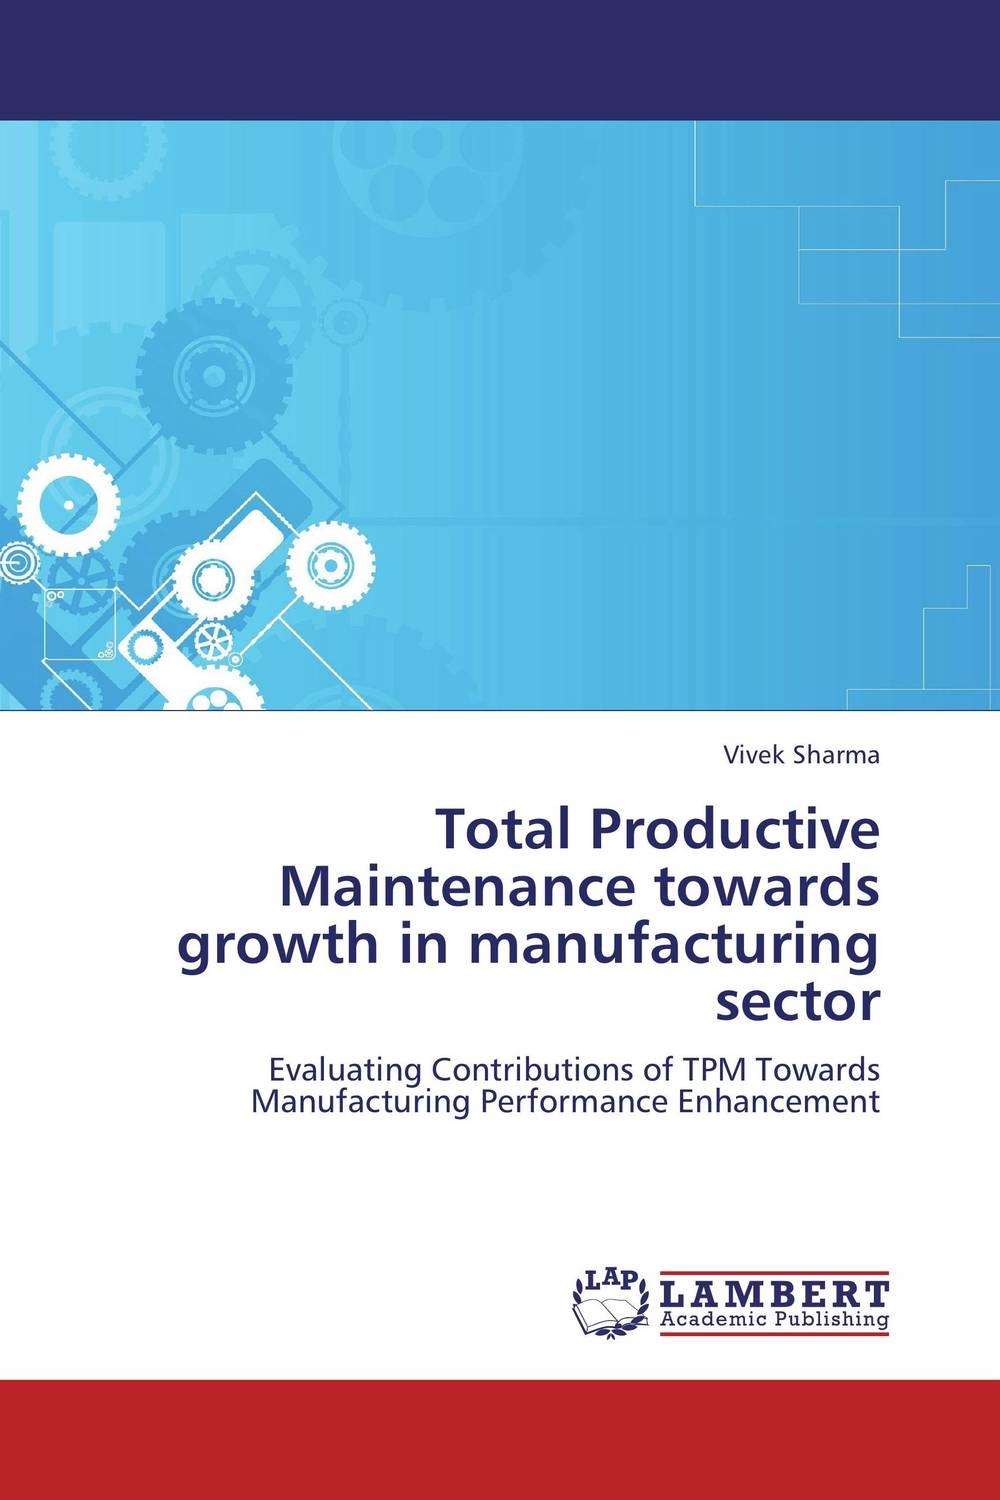 Total Productive Maintenance towards growth in manufacturing sector ботинки челси кожаные holton